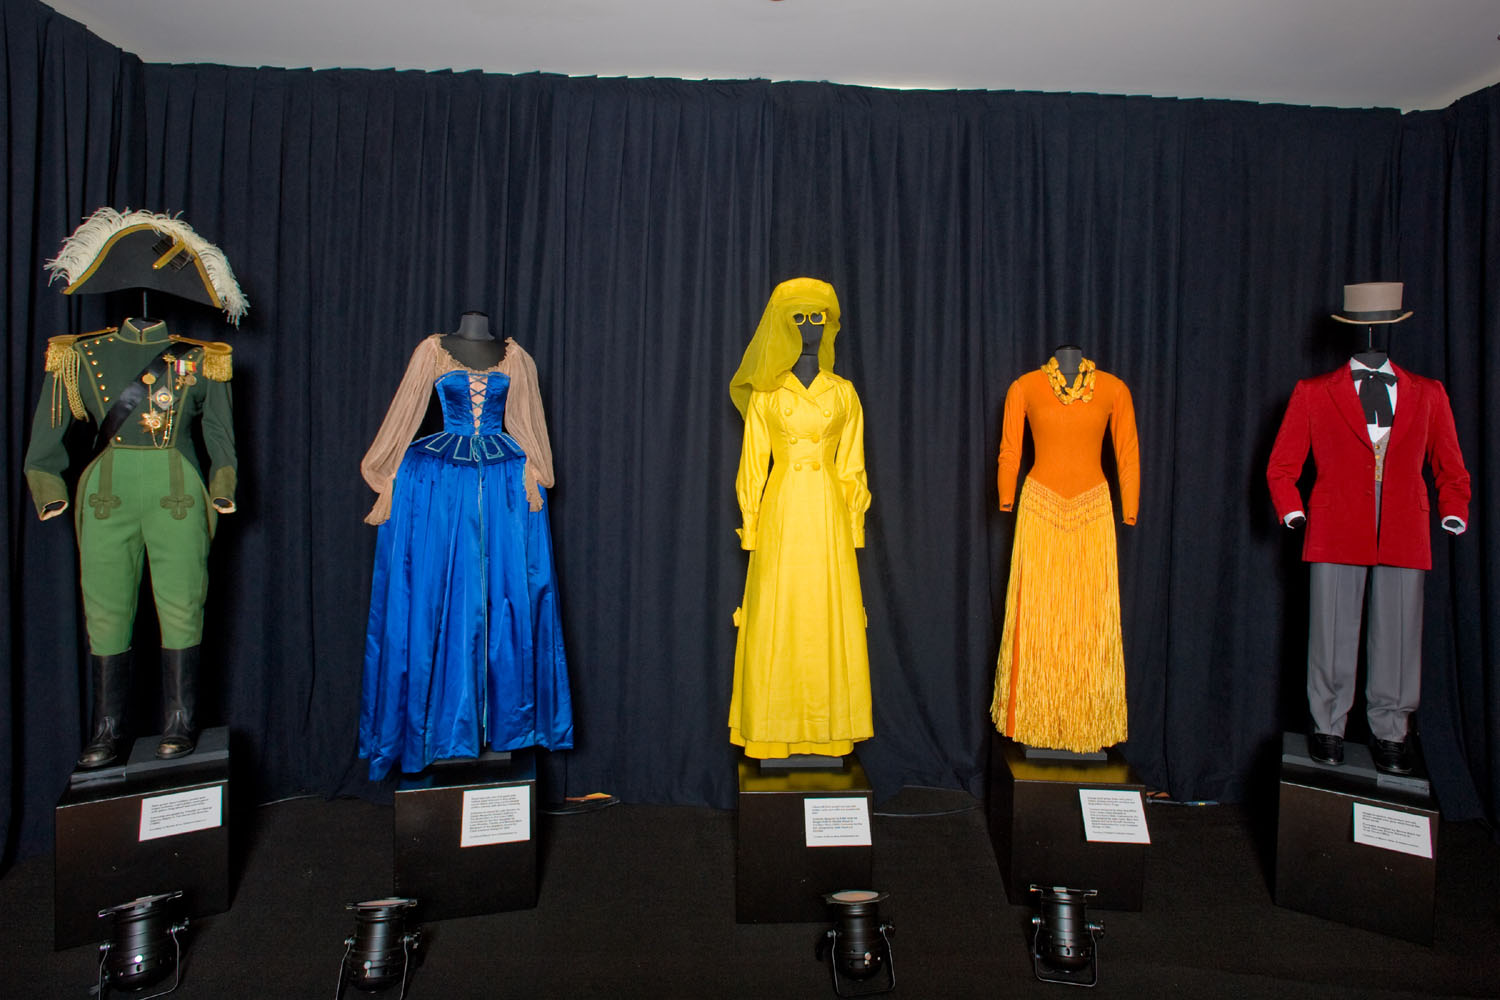 Dressed in Color: The Costumes